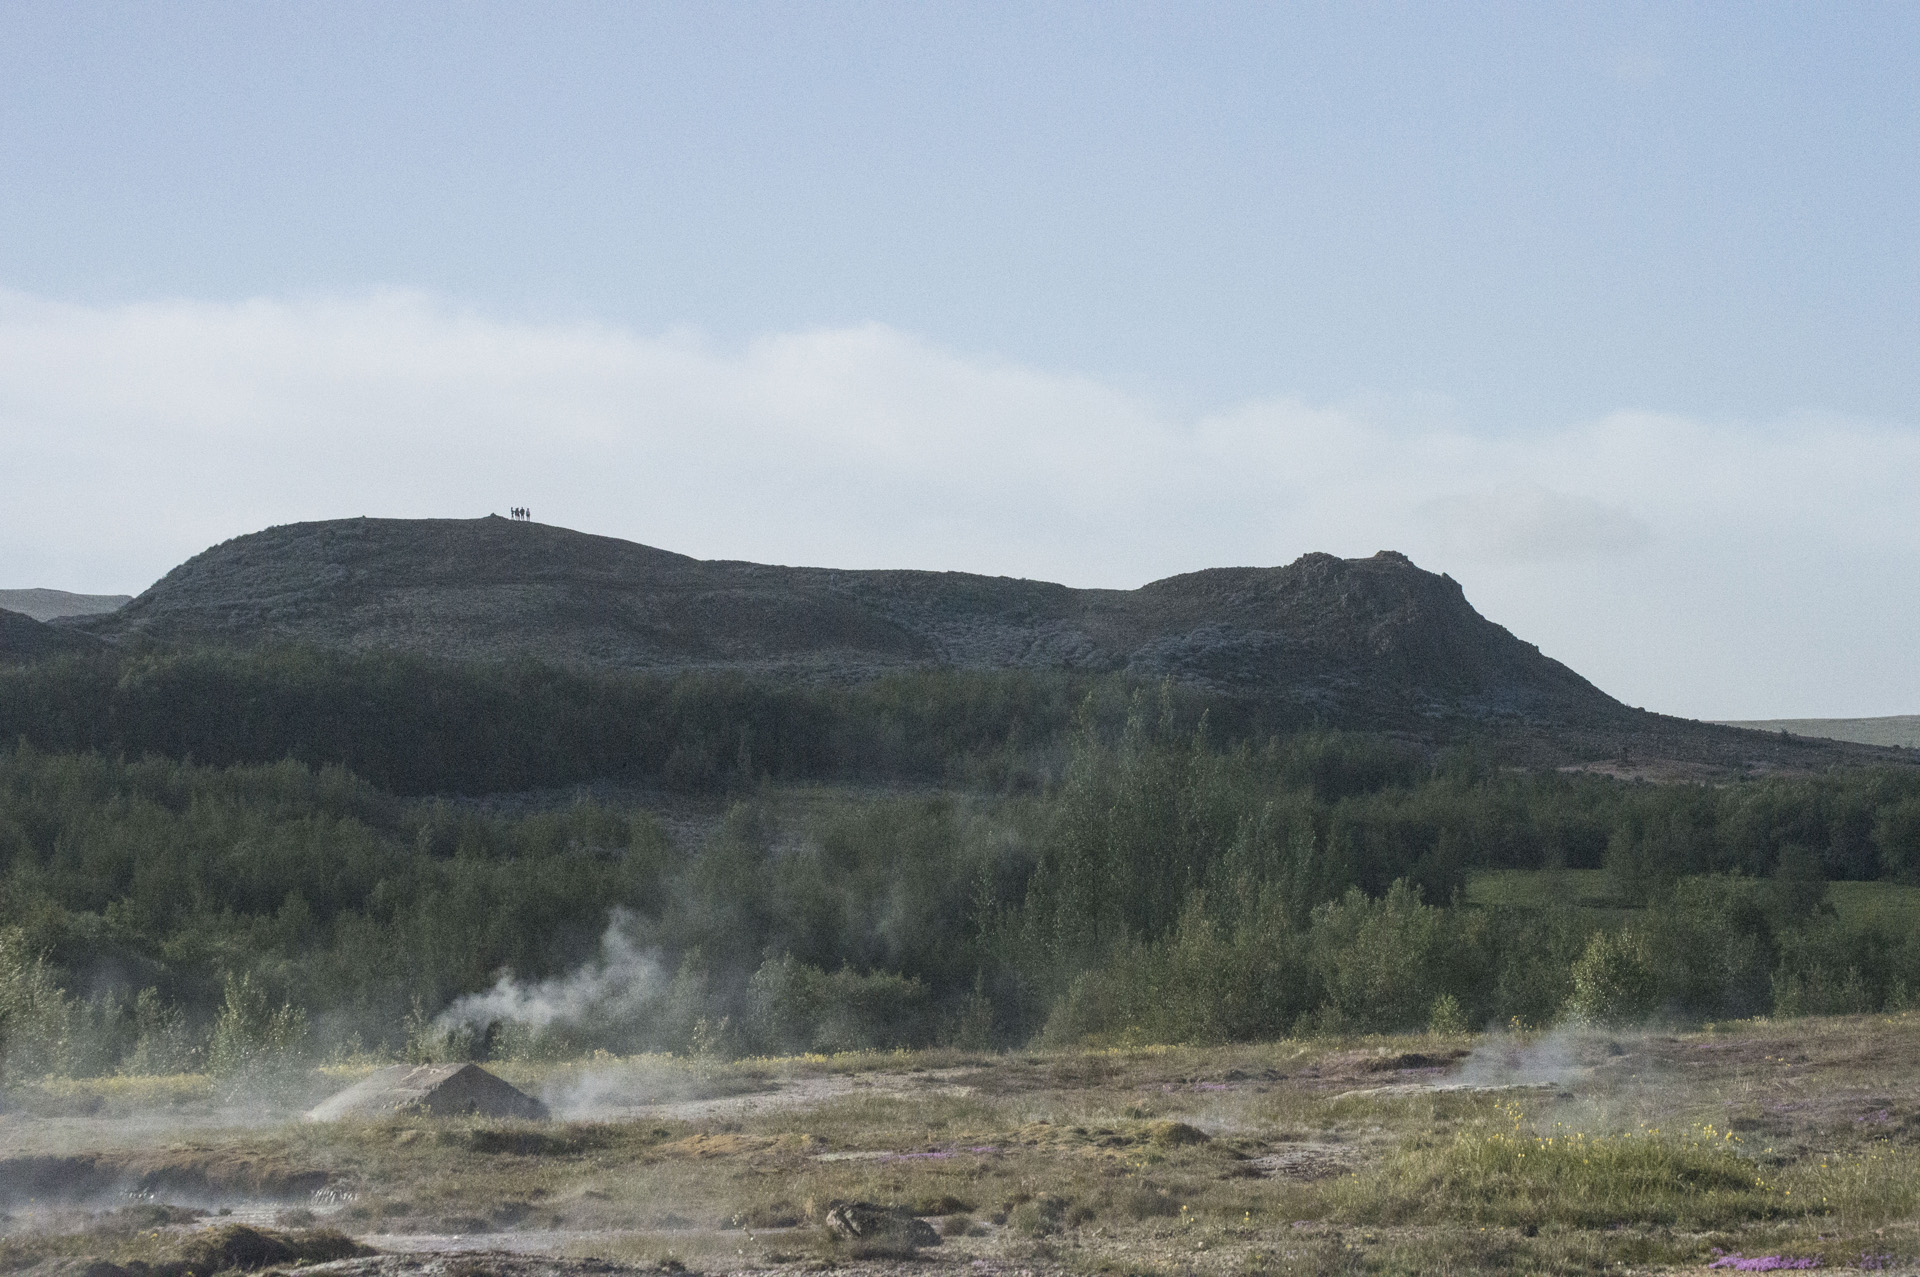 A steam hut in front of one of the bluffs that surround the Geysir Hot Spring Area in the Haukadalur Valley, Iceland.